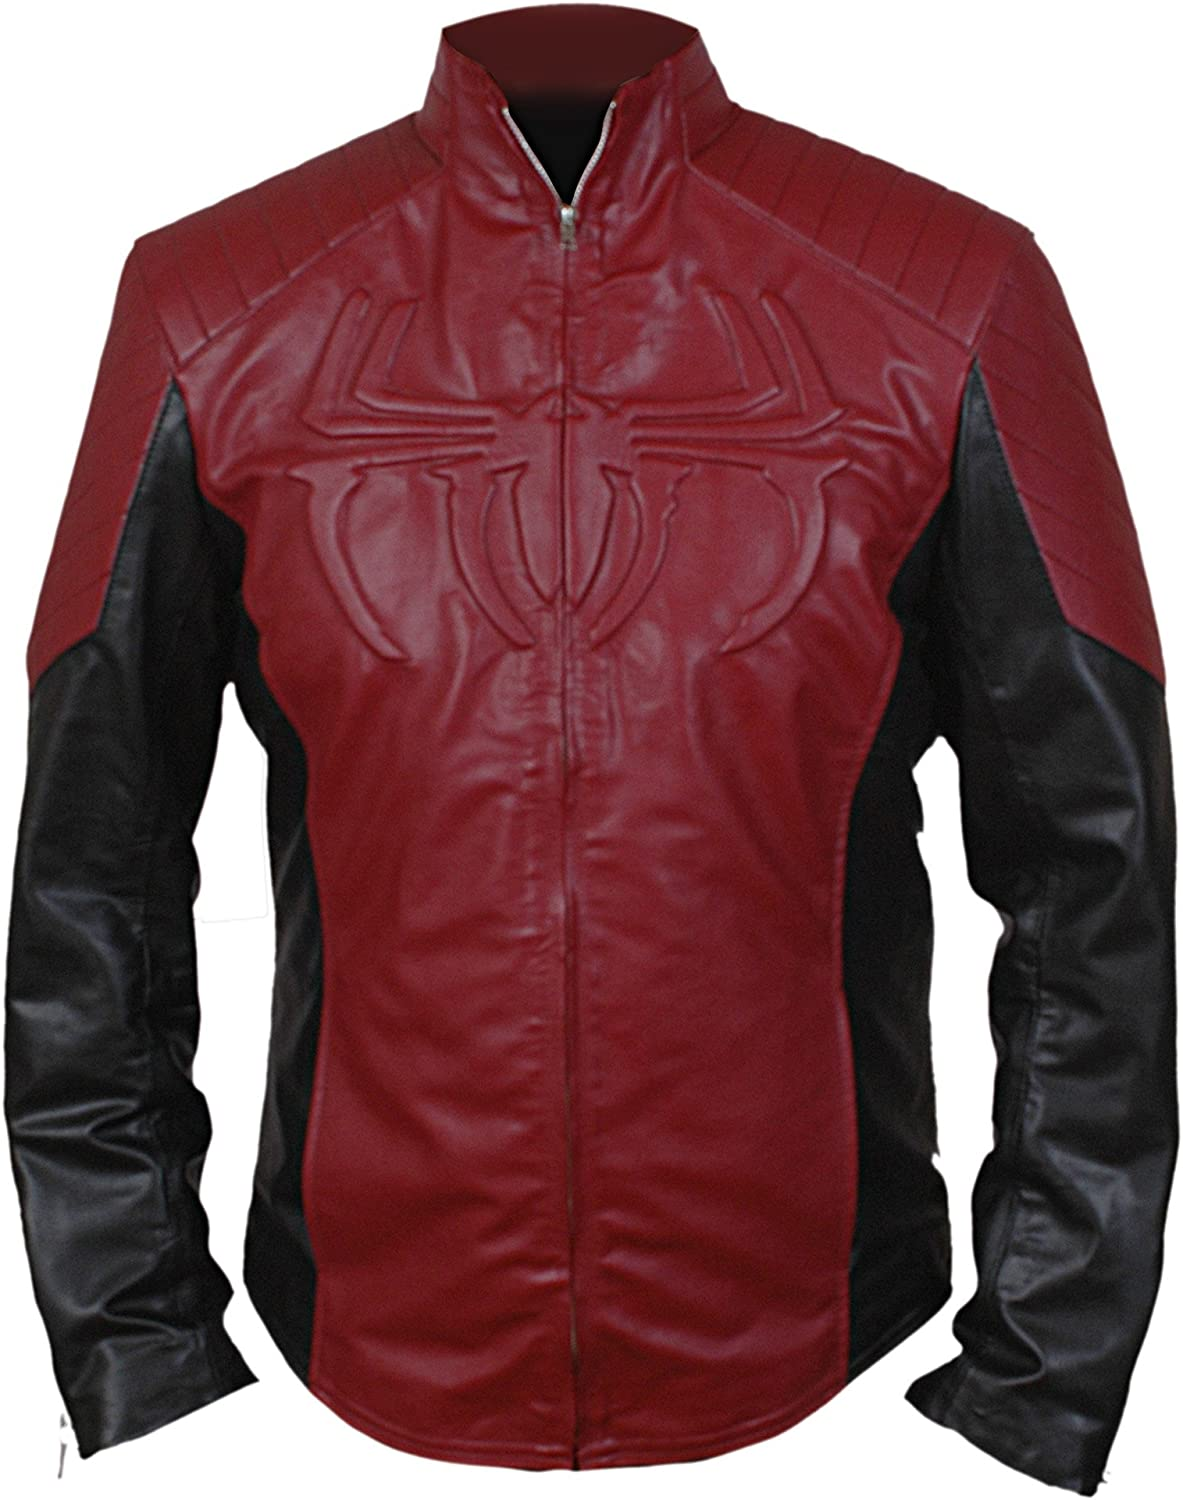 Flesh /& Hide F/&H Mens Superhero Amazing Spider Maroon /& Black Jacket